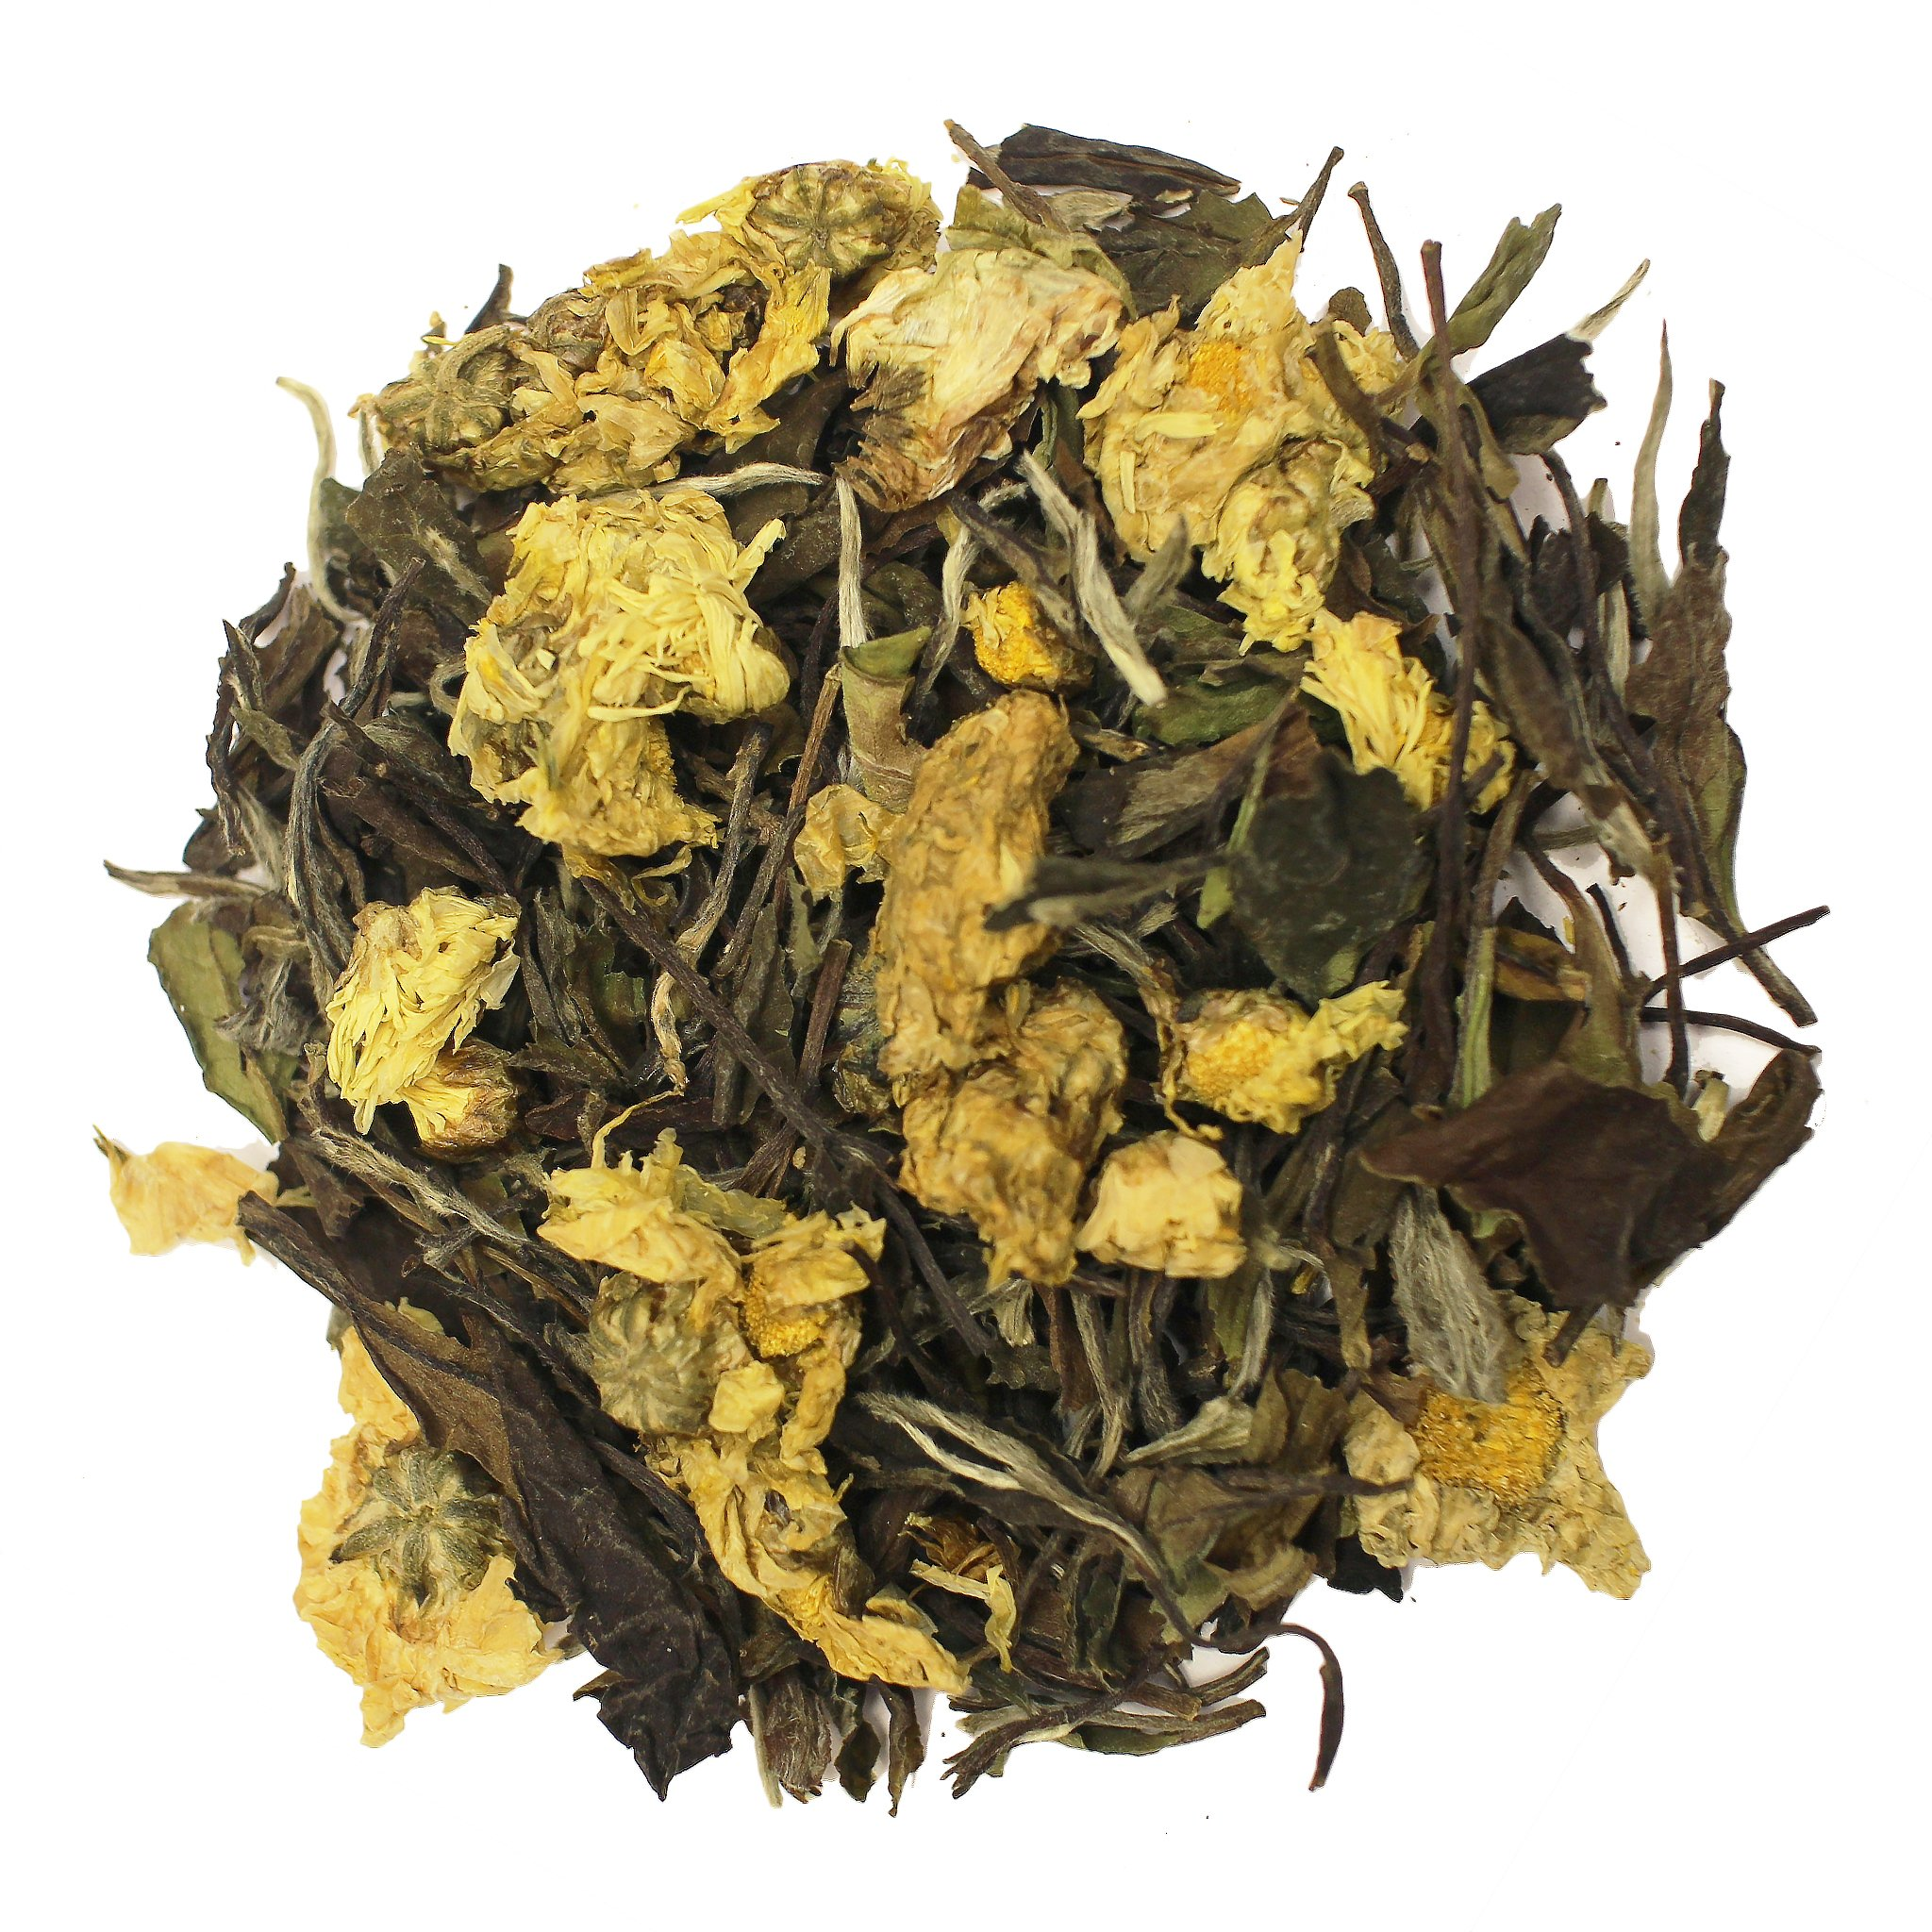 The Tea Farm - Chrysanthemum White Floral Tea - Loose Leaf White Tea (16 Ounce Bag) by The Tea Farm (Image #1)